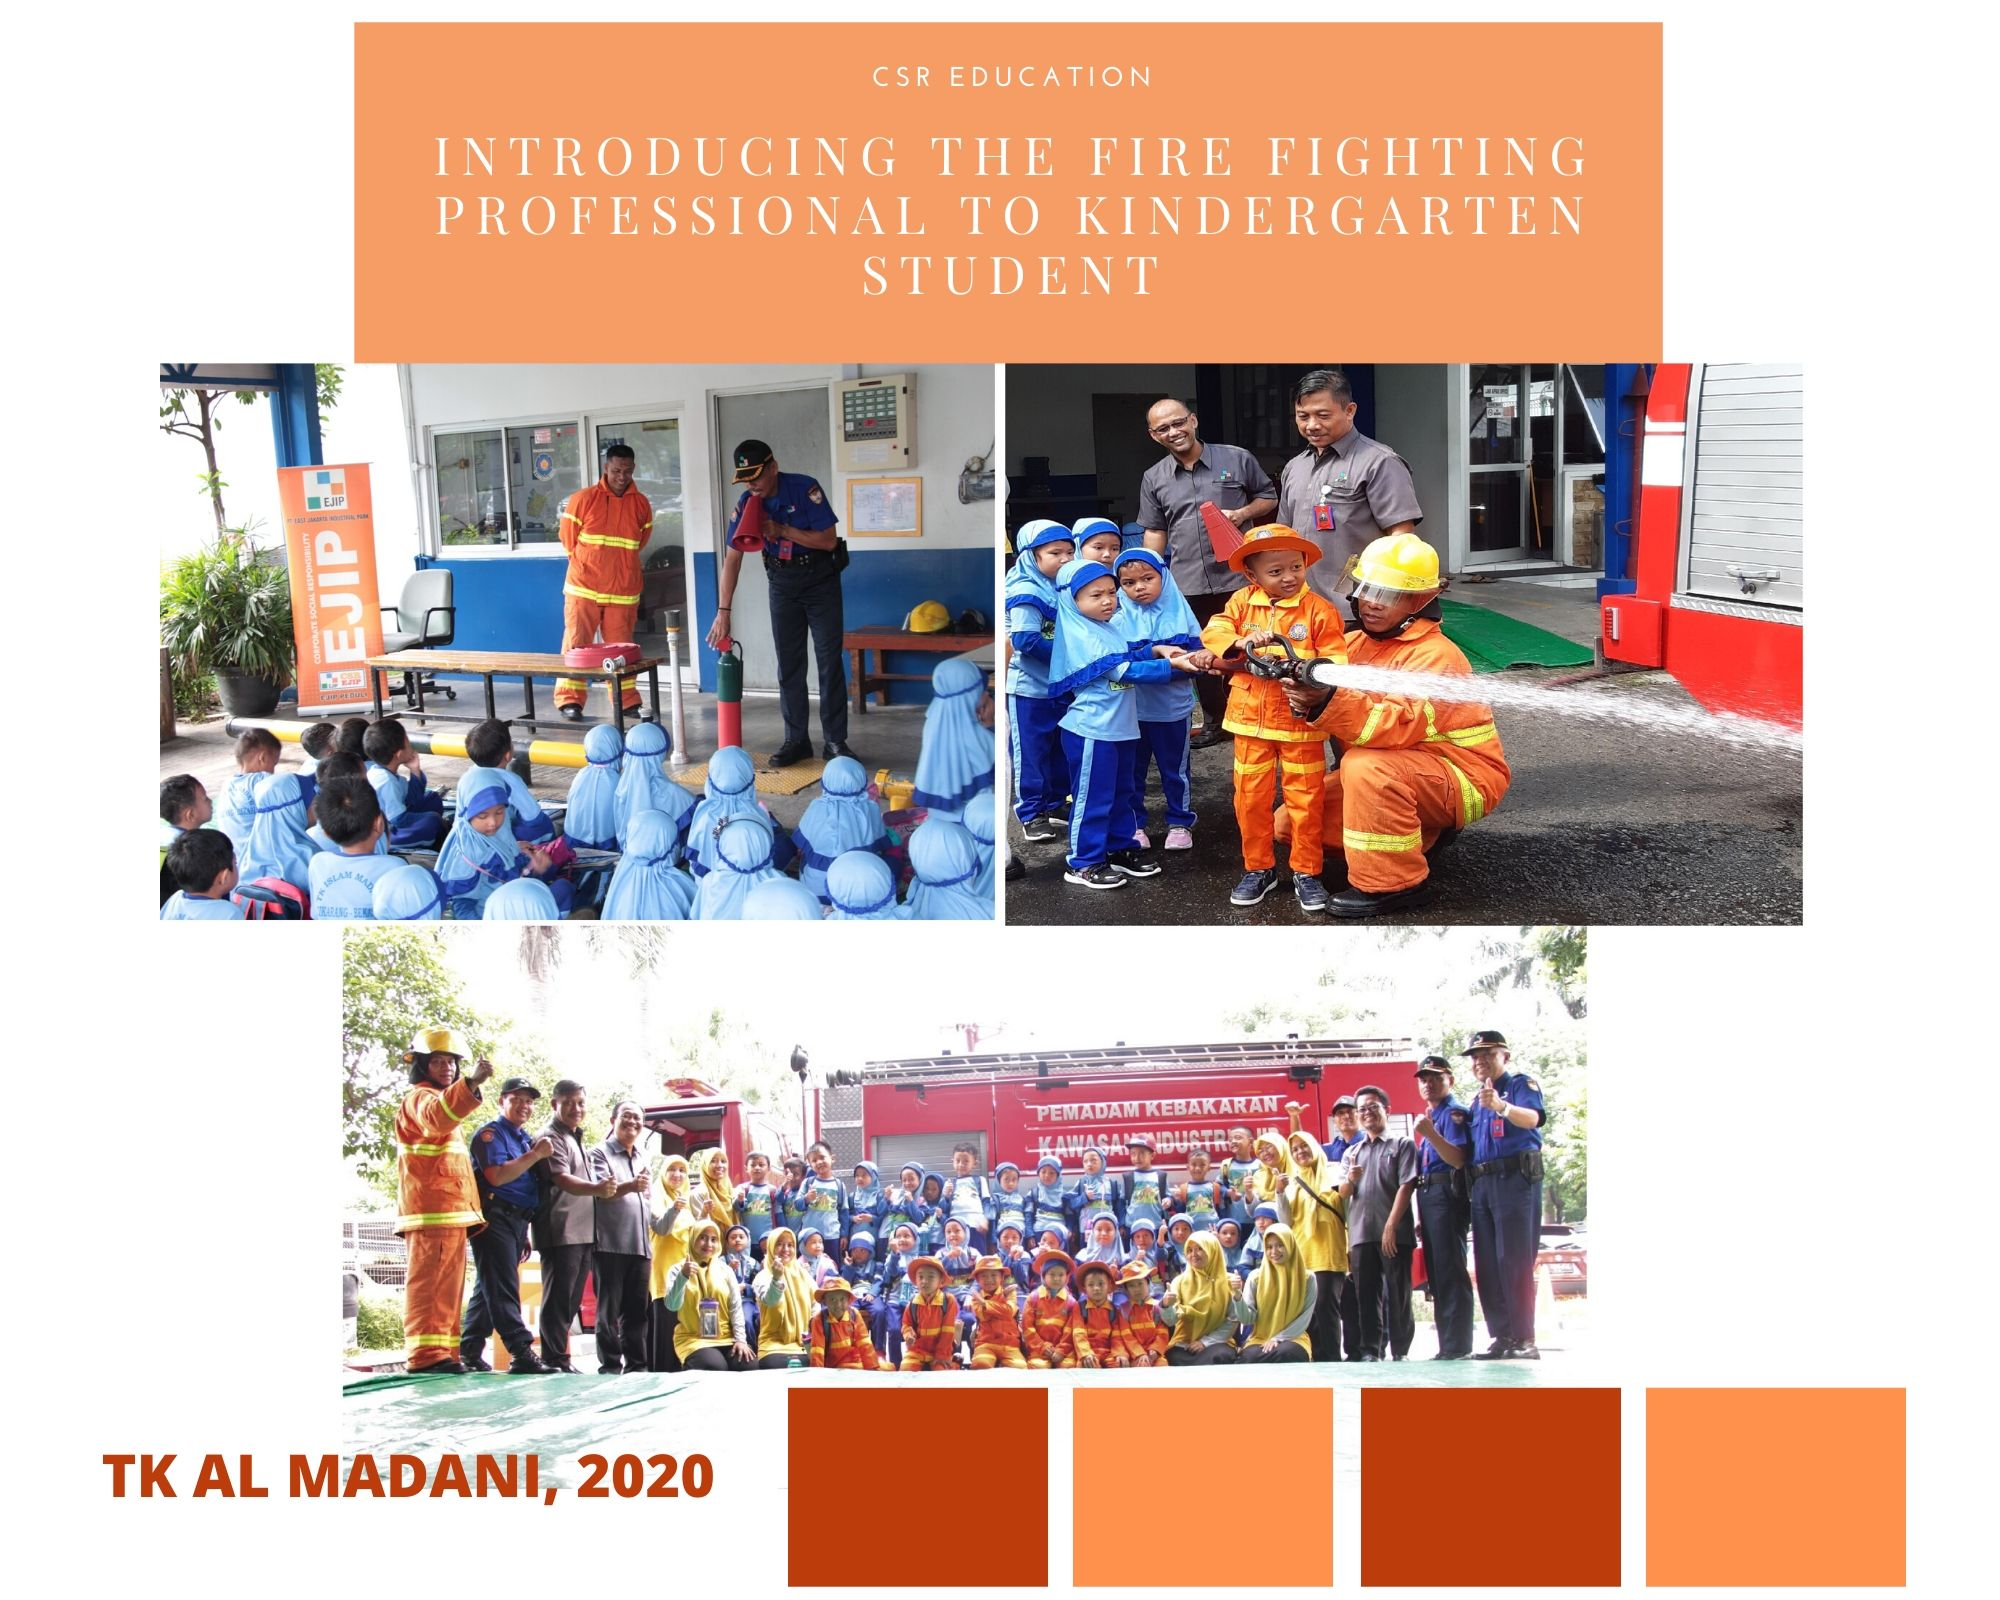 CSR Education : Introducing the Fire Fighting Professional to Kindergarten Student